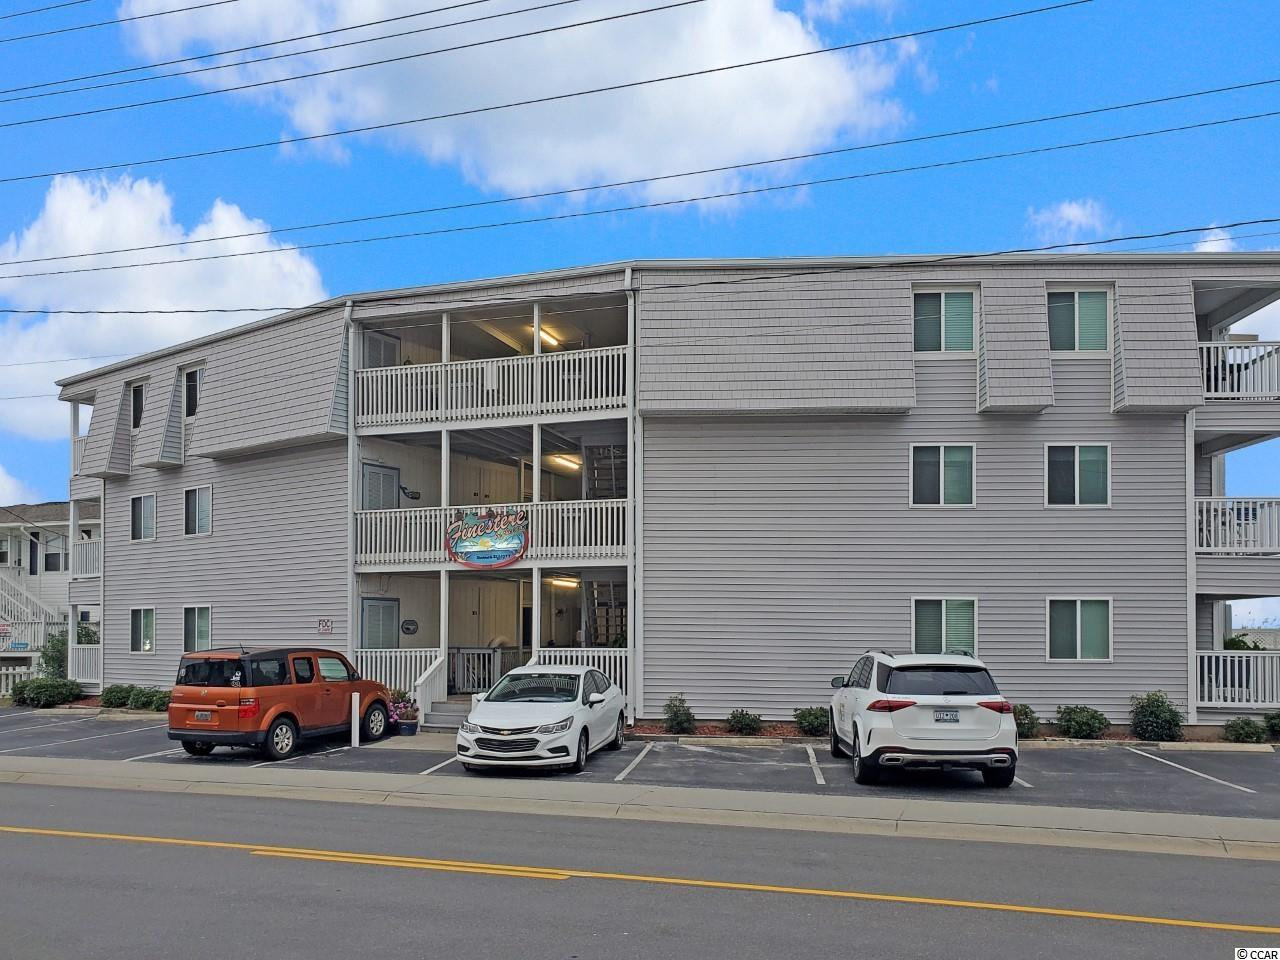 This rare and highly sought-after 'make it your own' condo is set within the Finestere development right in the heart of Cherry Grove. Whether you're on the hunt for an idyllic second home or a low-maintenance rental investment property to add to your portfolio, this is an impressive opportunity not to be missed. This condo is fully furnished with two bedrooms, two bathrooms and an open-concept living space. A peak of the ocean from your balcony provides the perfect backdrop to your new life of leisure with a host of contemporary comforts that will impress even the most astute house-hunter. You can head out and explore any one of the renowned local restaurants or stay in and cook up a storm in the kitchen.  The HVAC was replaced in 2021 plus there's an in-unit washer and dryer. All this is set on the first floor of the Finestere complex with residents also enjoying access to a selection of amenities. There's a community pool and an expansive ocean-front sun deck with picnic tables along with direct beach access and an outdoor shower area for rinsing off after a day on the sand.  The renowned Boulineau's Foods Plus grocery store is only a short drive away as are popular restaurants, live music venues, ice cream shops and the bustling main street. Shopping, golf courses, parks and pristine waterways are all at your fingertips and are just waiting to be explored.